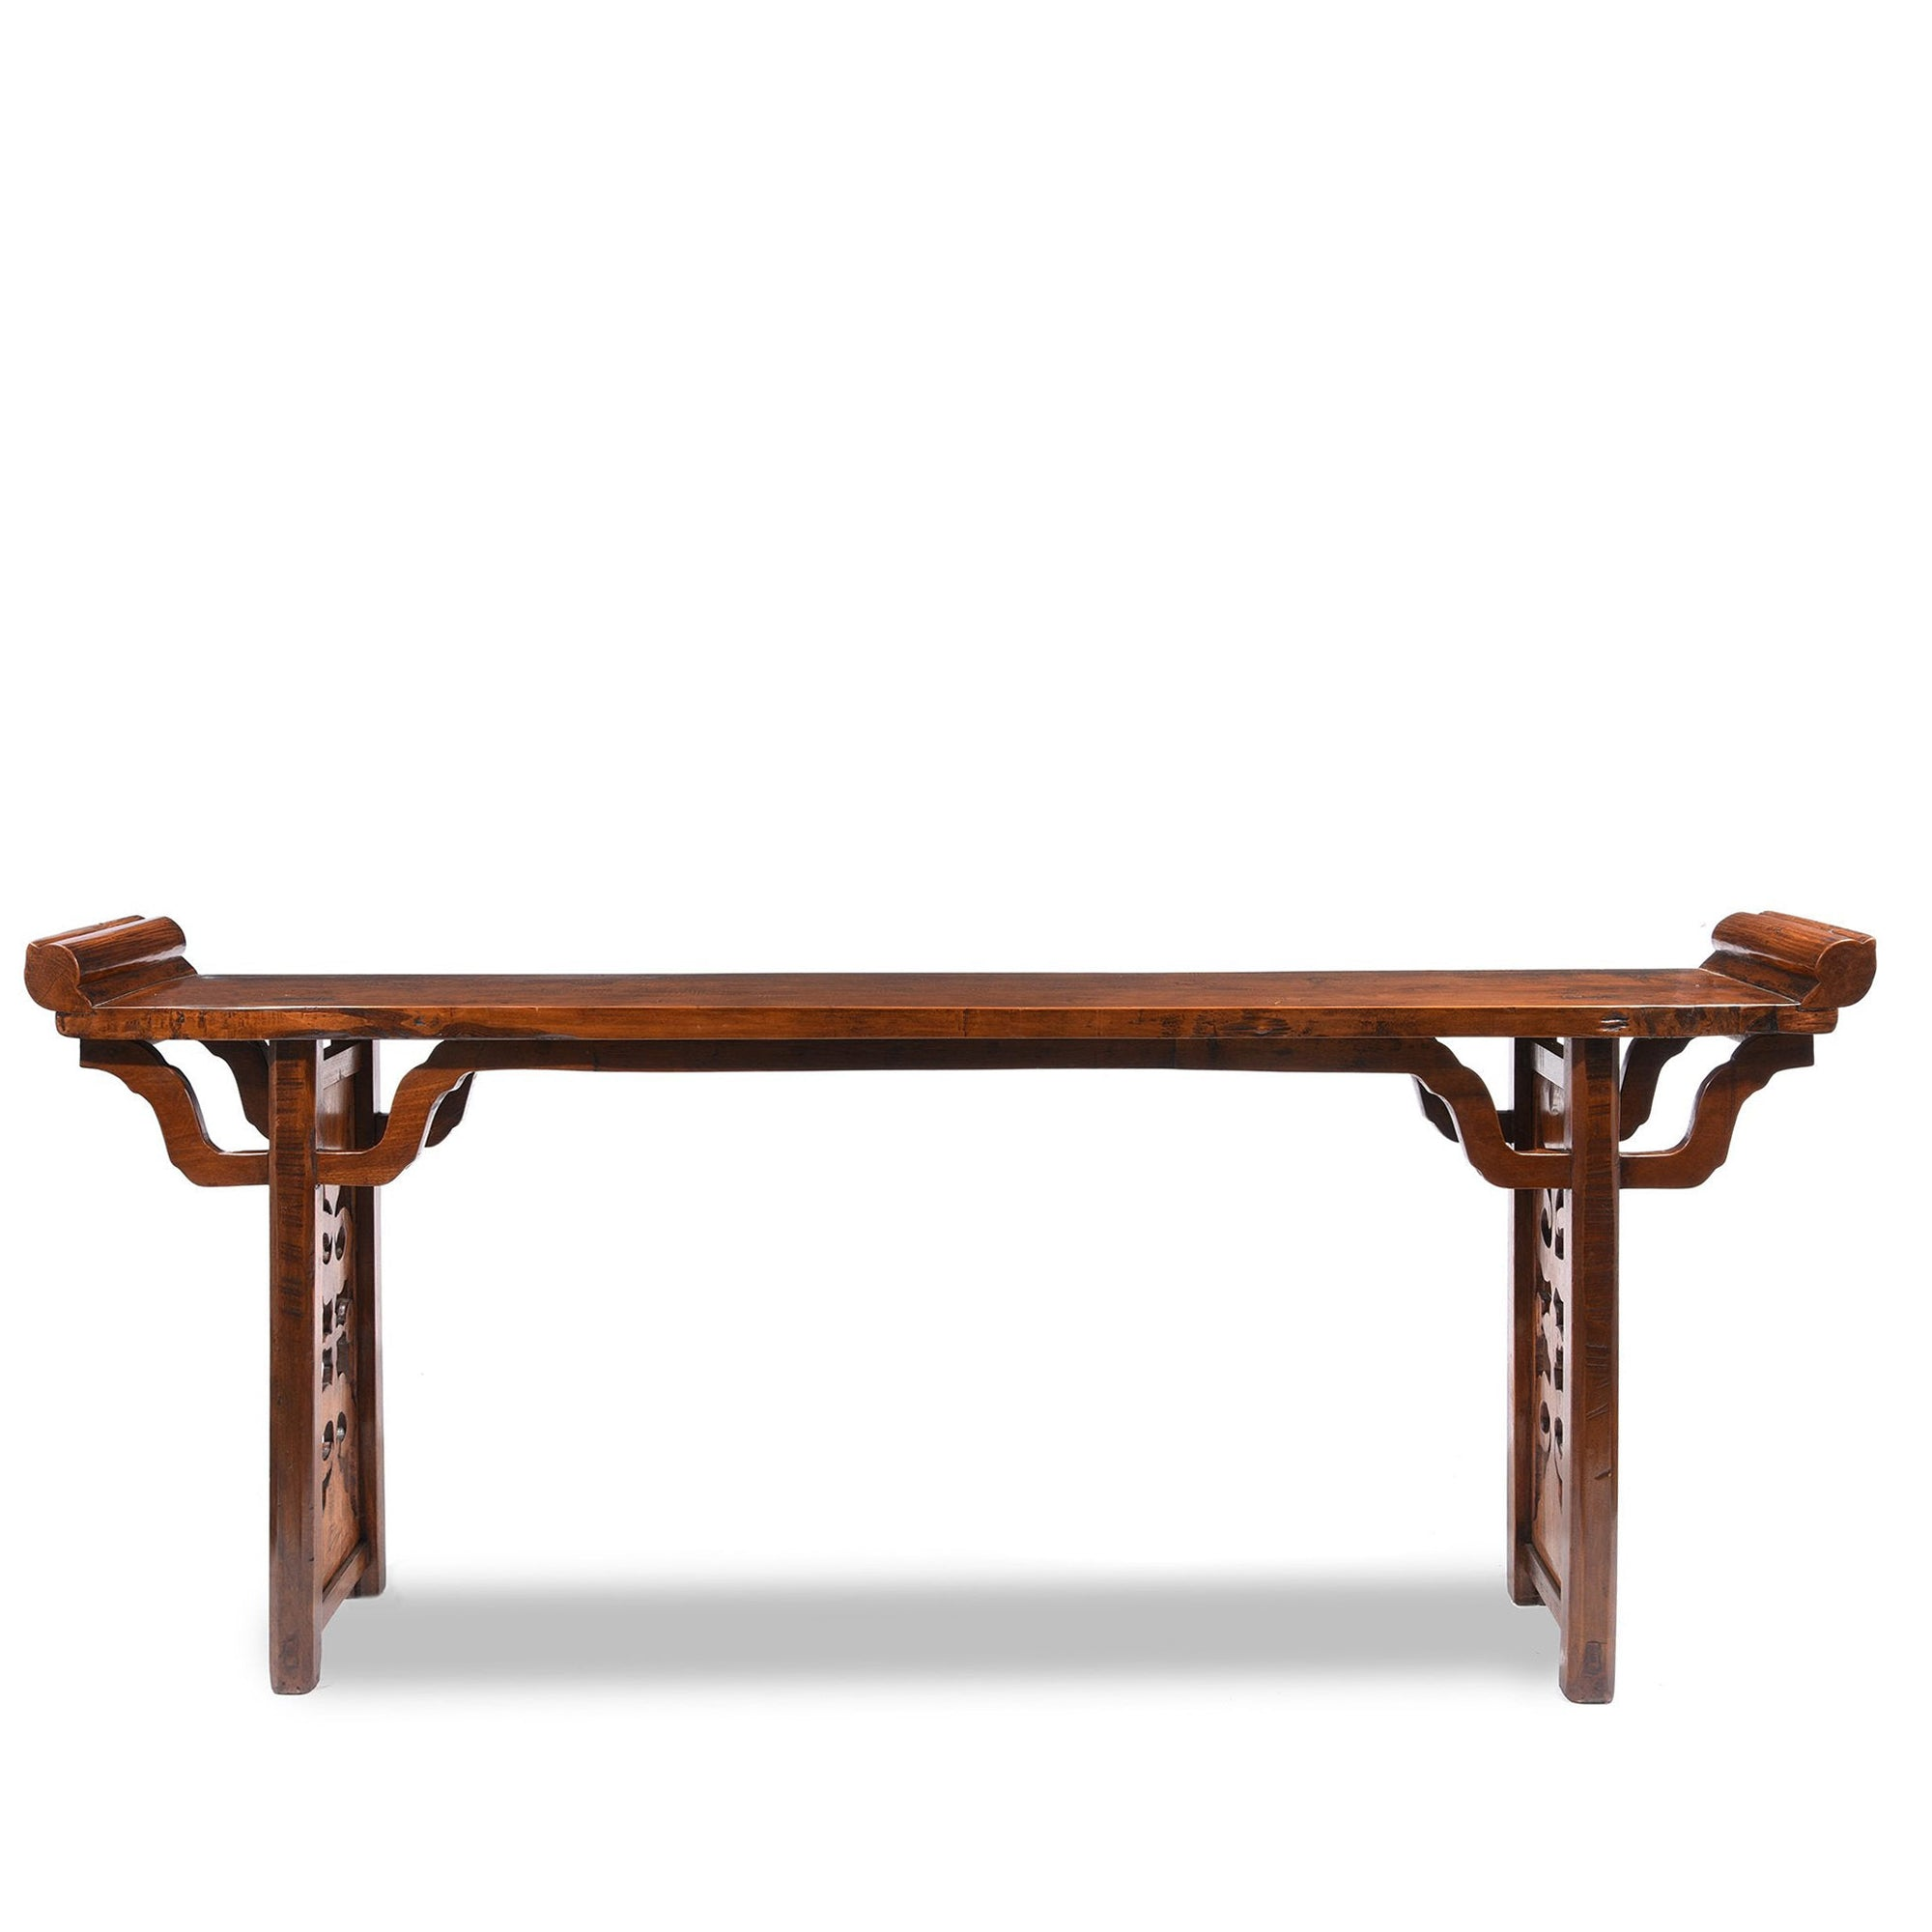 Antique Walnut Chinese Altar Table with original scroll ends From Gansu Province - 19thC | Indigo Oriental Antiques